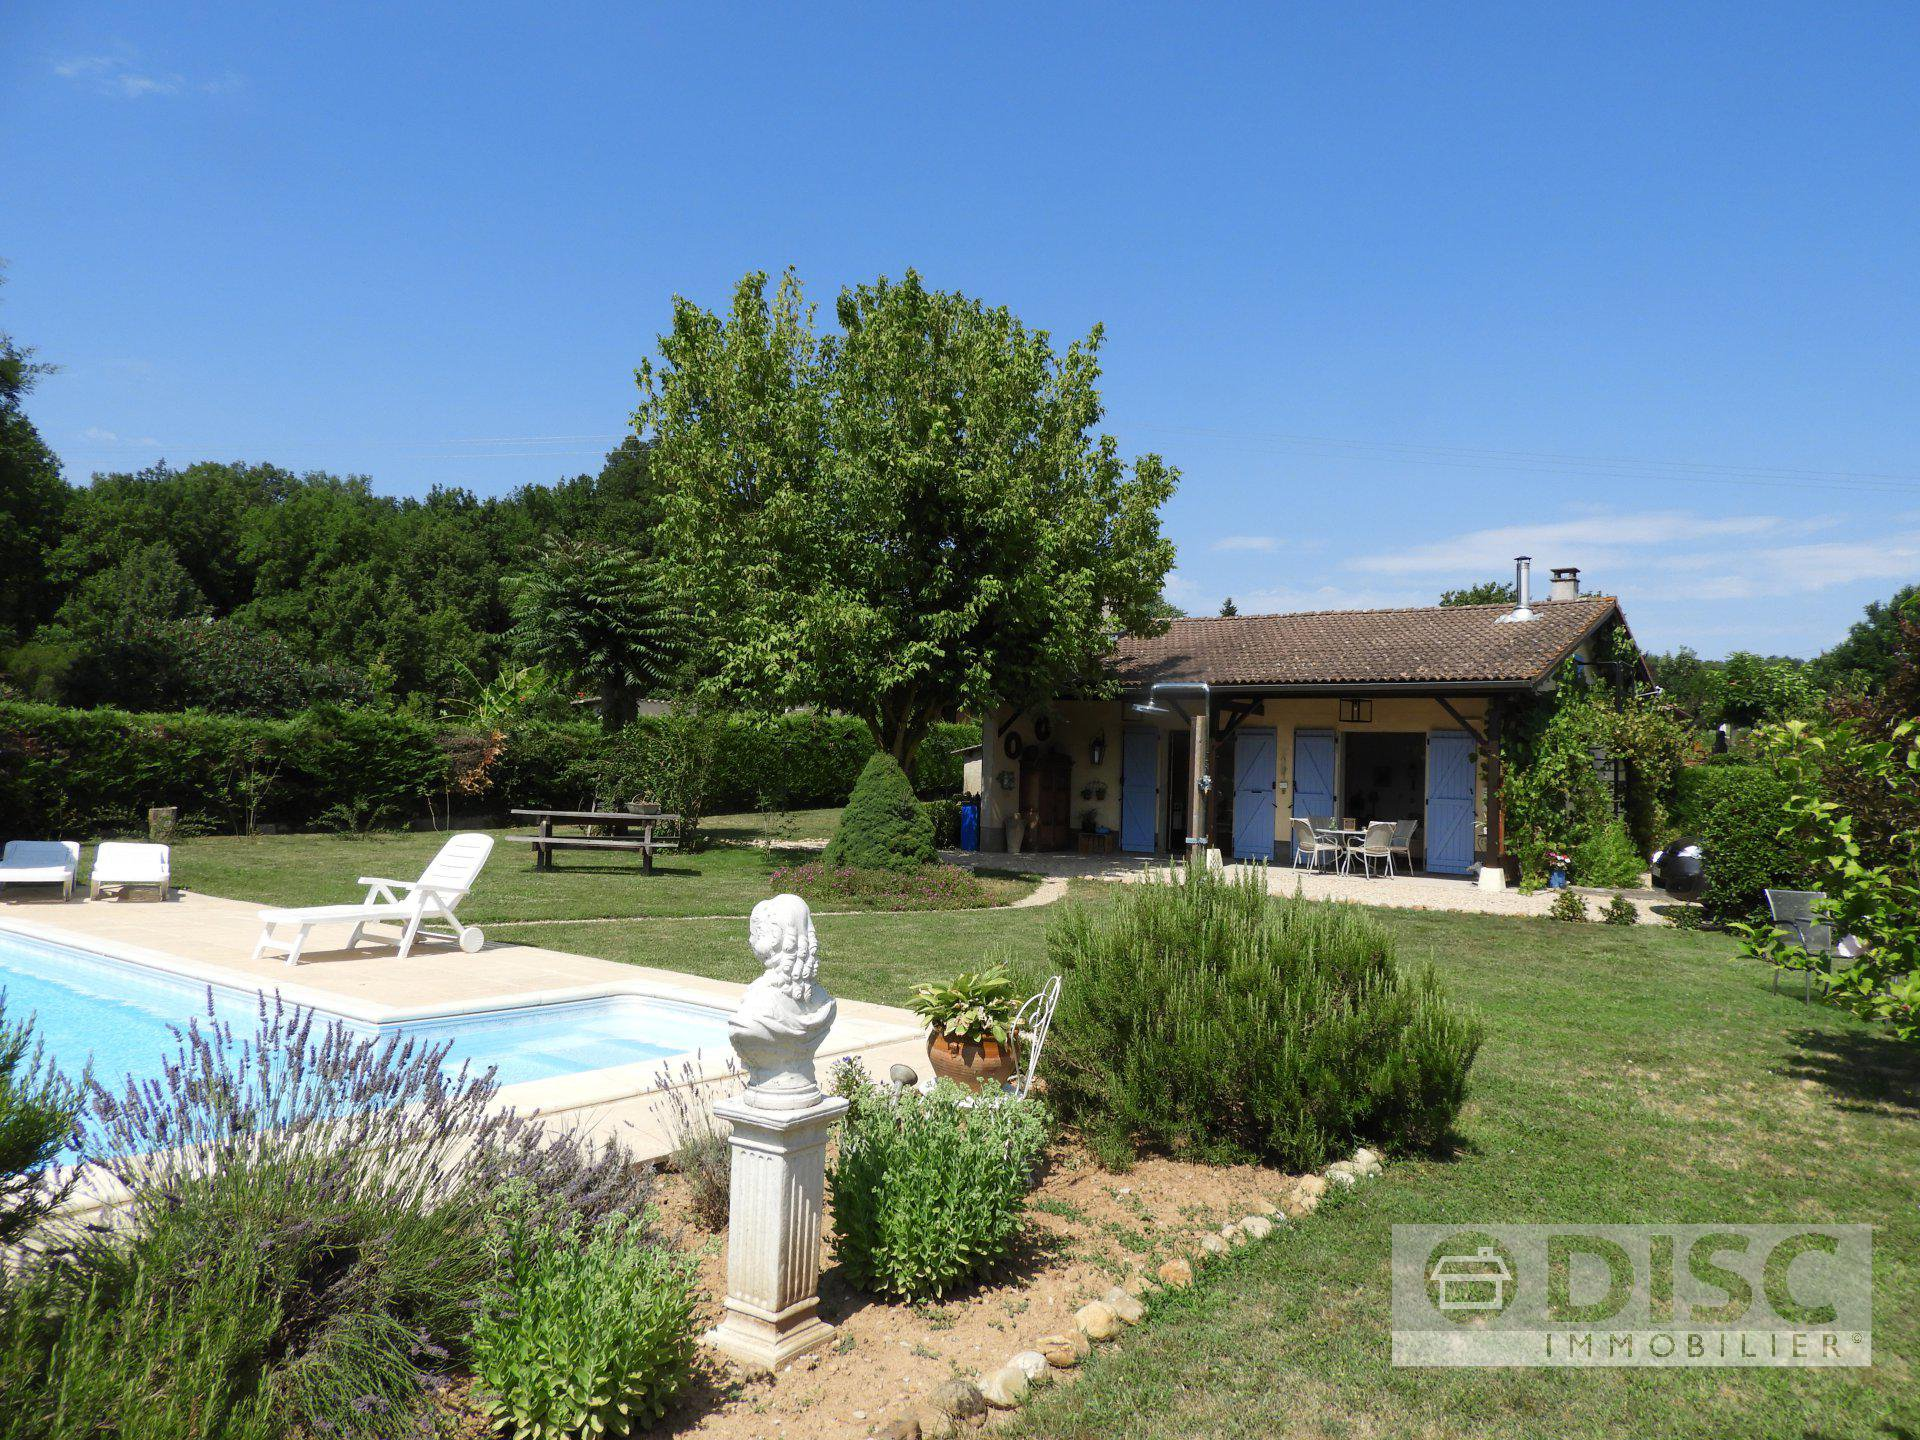 Charming single storey house with swimming pool and garden.